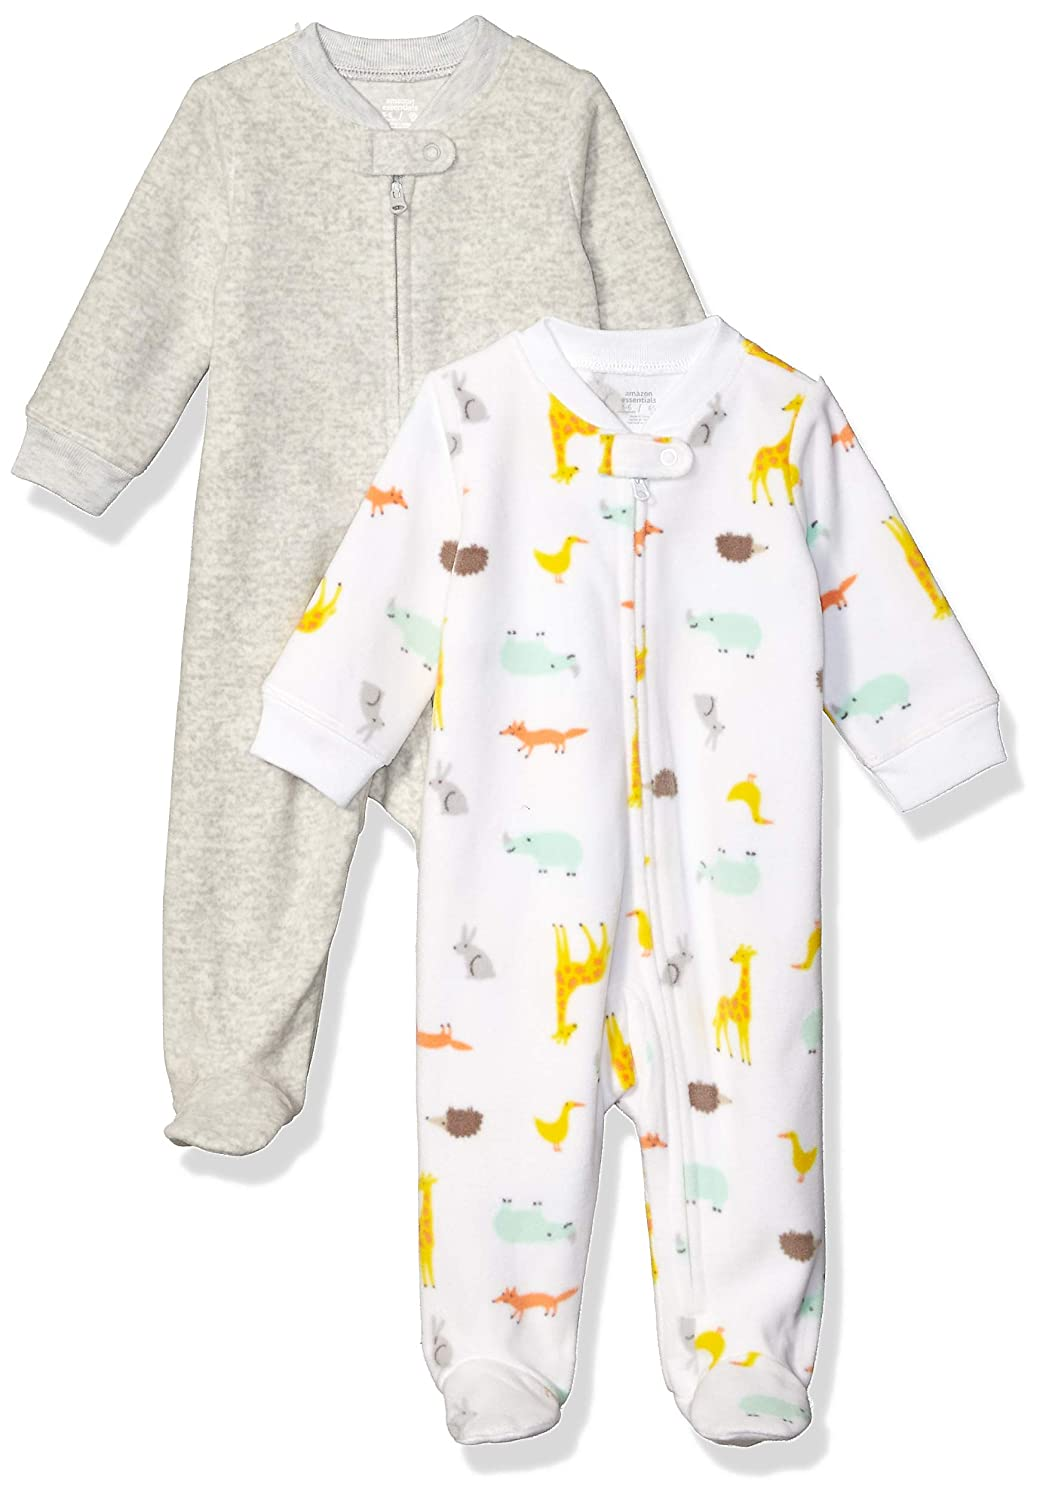 0-3M Essentials Baby 2-Pack Microfleece Sleep and Play Multi Animal